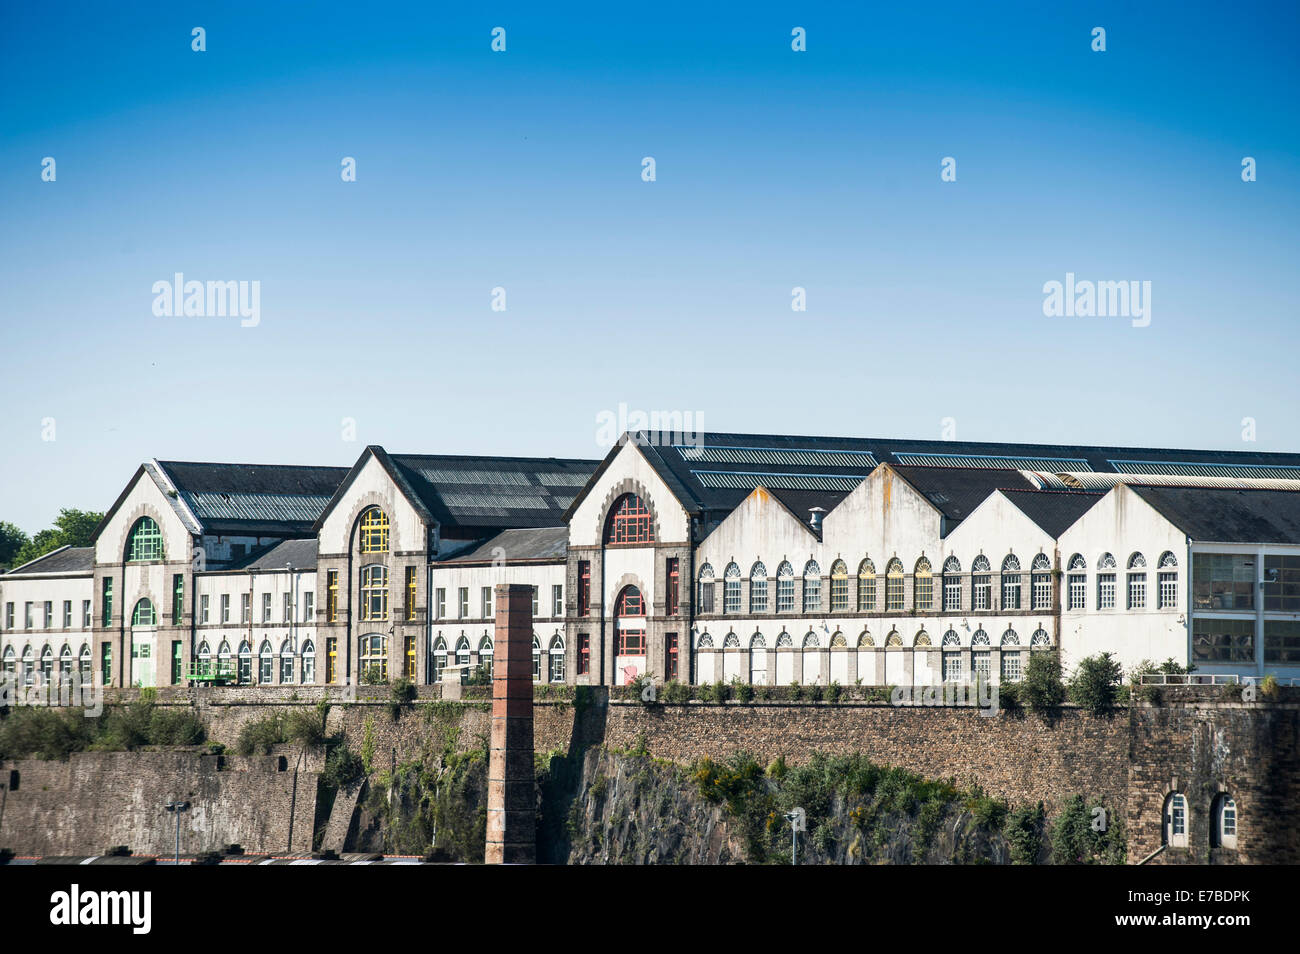 Factory buildings, Brest, Brittany, France - Stock Image